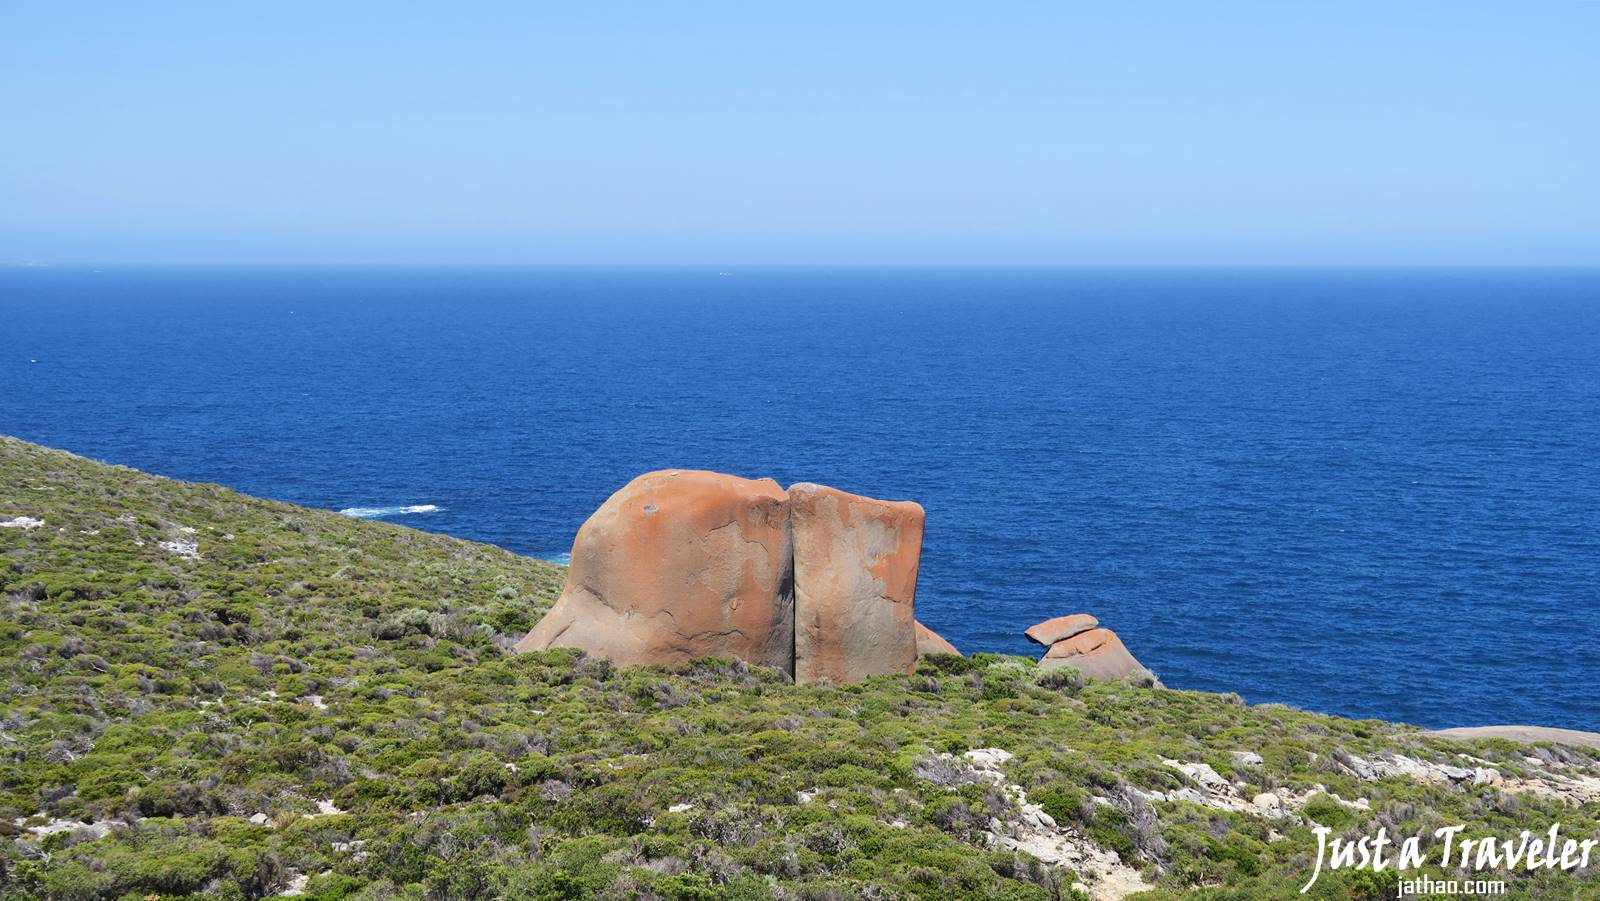 Adelaide-Kangaroo Island-Remarkable Rocks-Transportation-Ferry-Attractions-Itineraries-Recommendation-Travel Blogs-Back-Pack Travel-Independent Travel-Tour-Day Tour-Two Day Tour